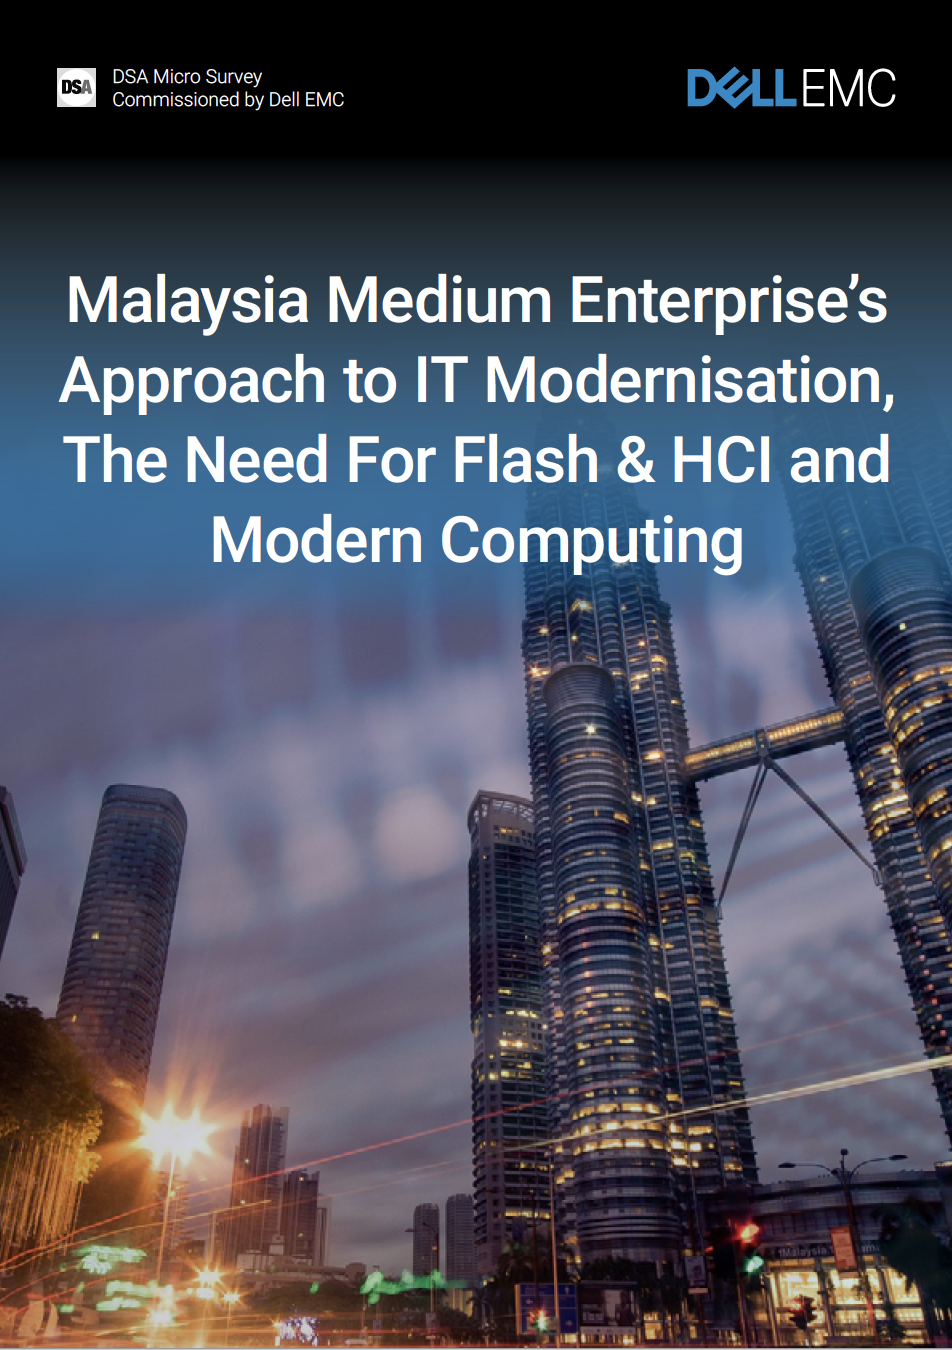 Malaysia Medium Enterprise's Approach to IT Modernisation, The Need For Flash & HCI and Modern Computing.pdf